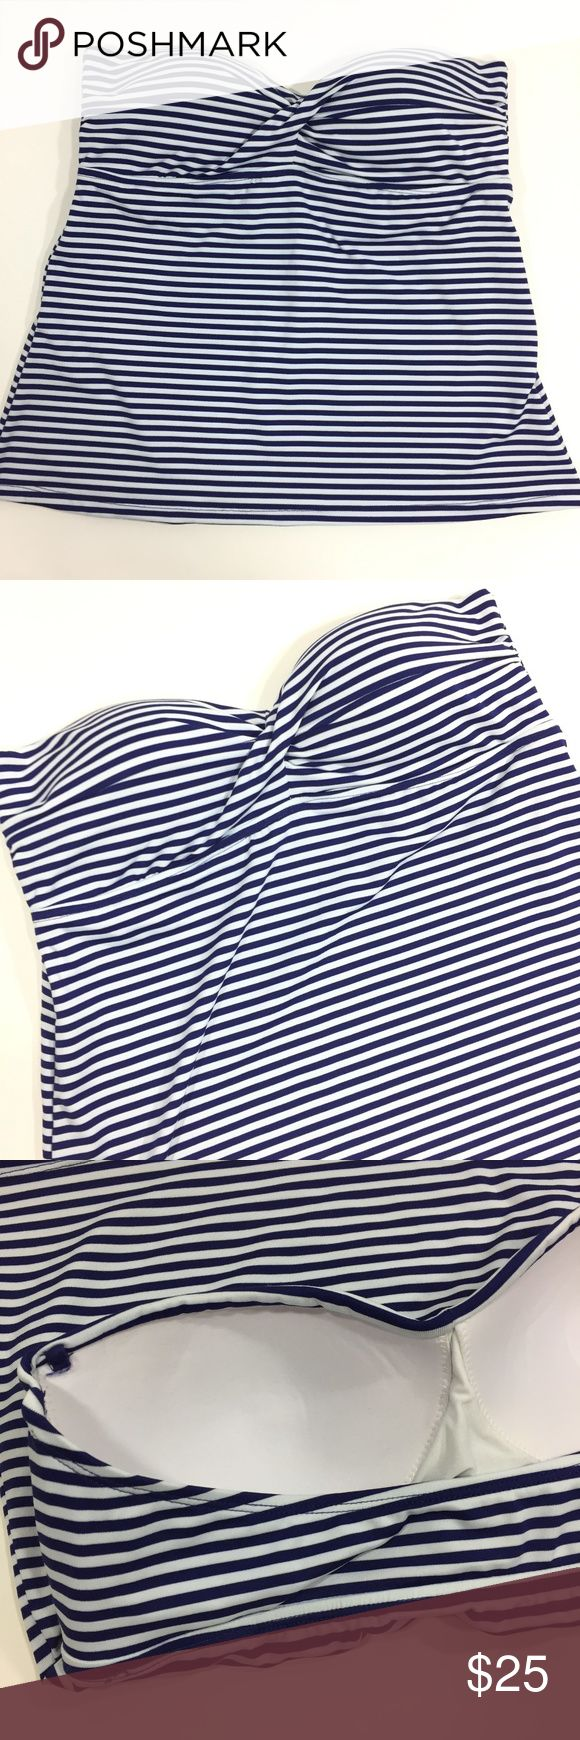 NEW Mossimo Women's Tankini Top Size XL NEW Mossimo Women's Tankini Top Size XL Blue White Striped Tankini Top Strapless Padded  New with tags Please see pictures for measurements Mossimo Supply Co. Swim Bikinis